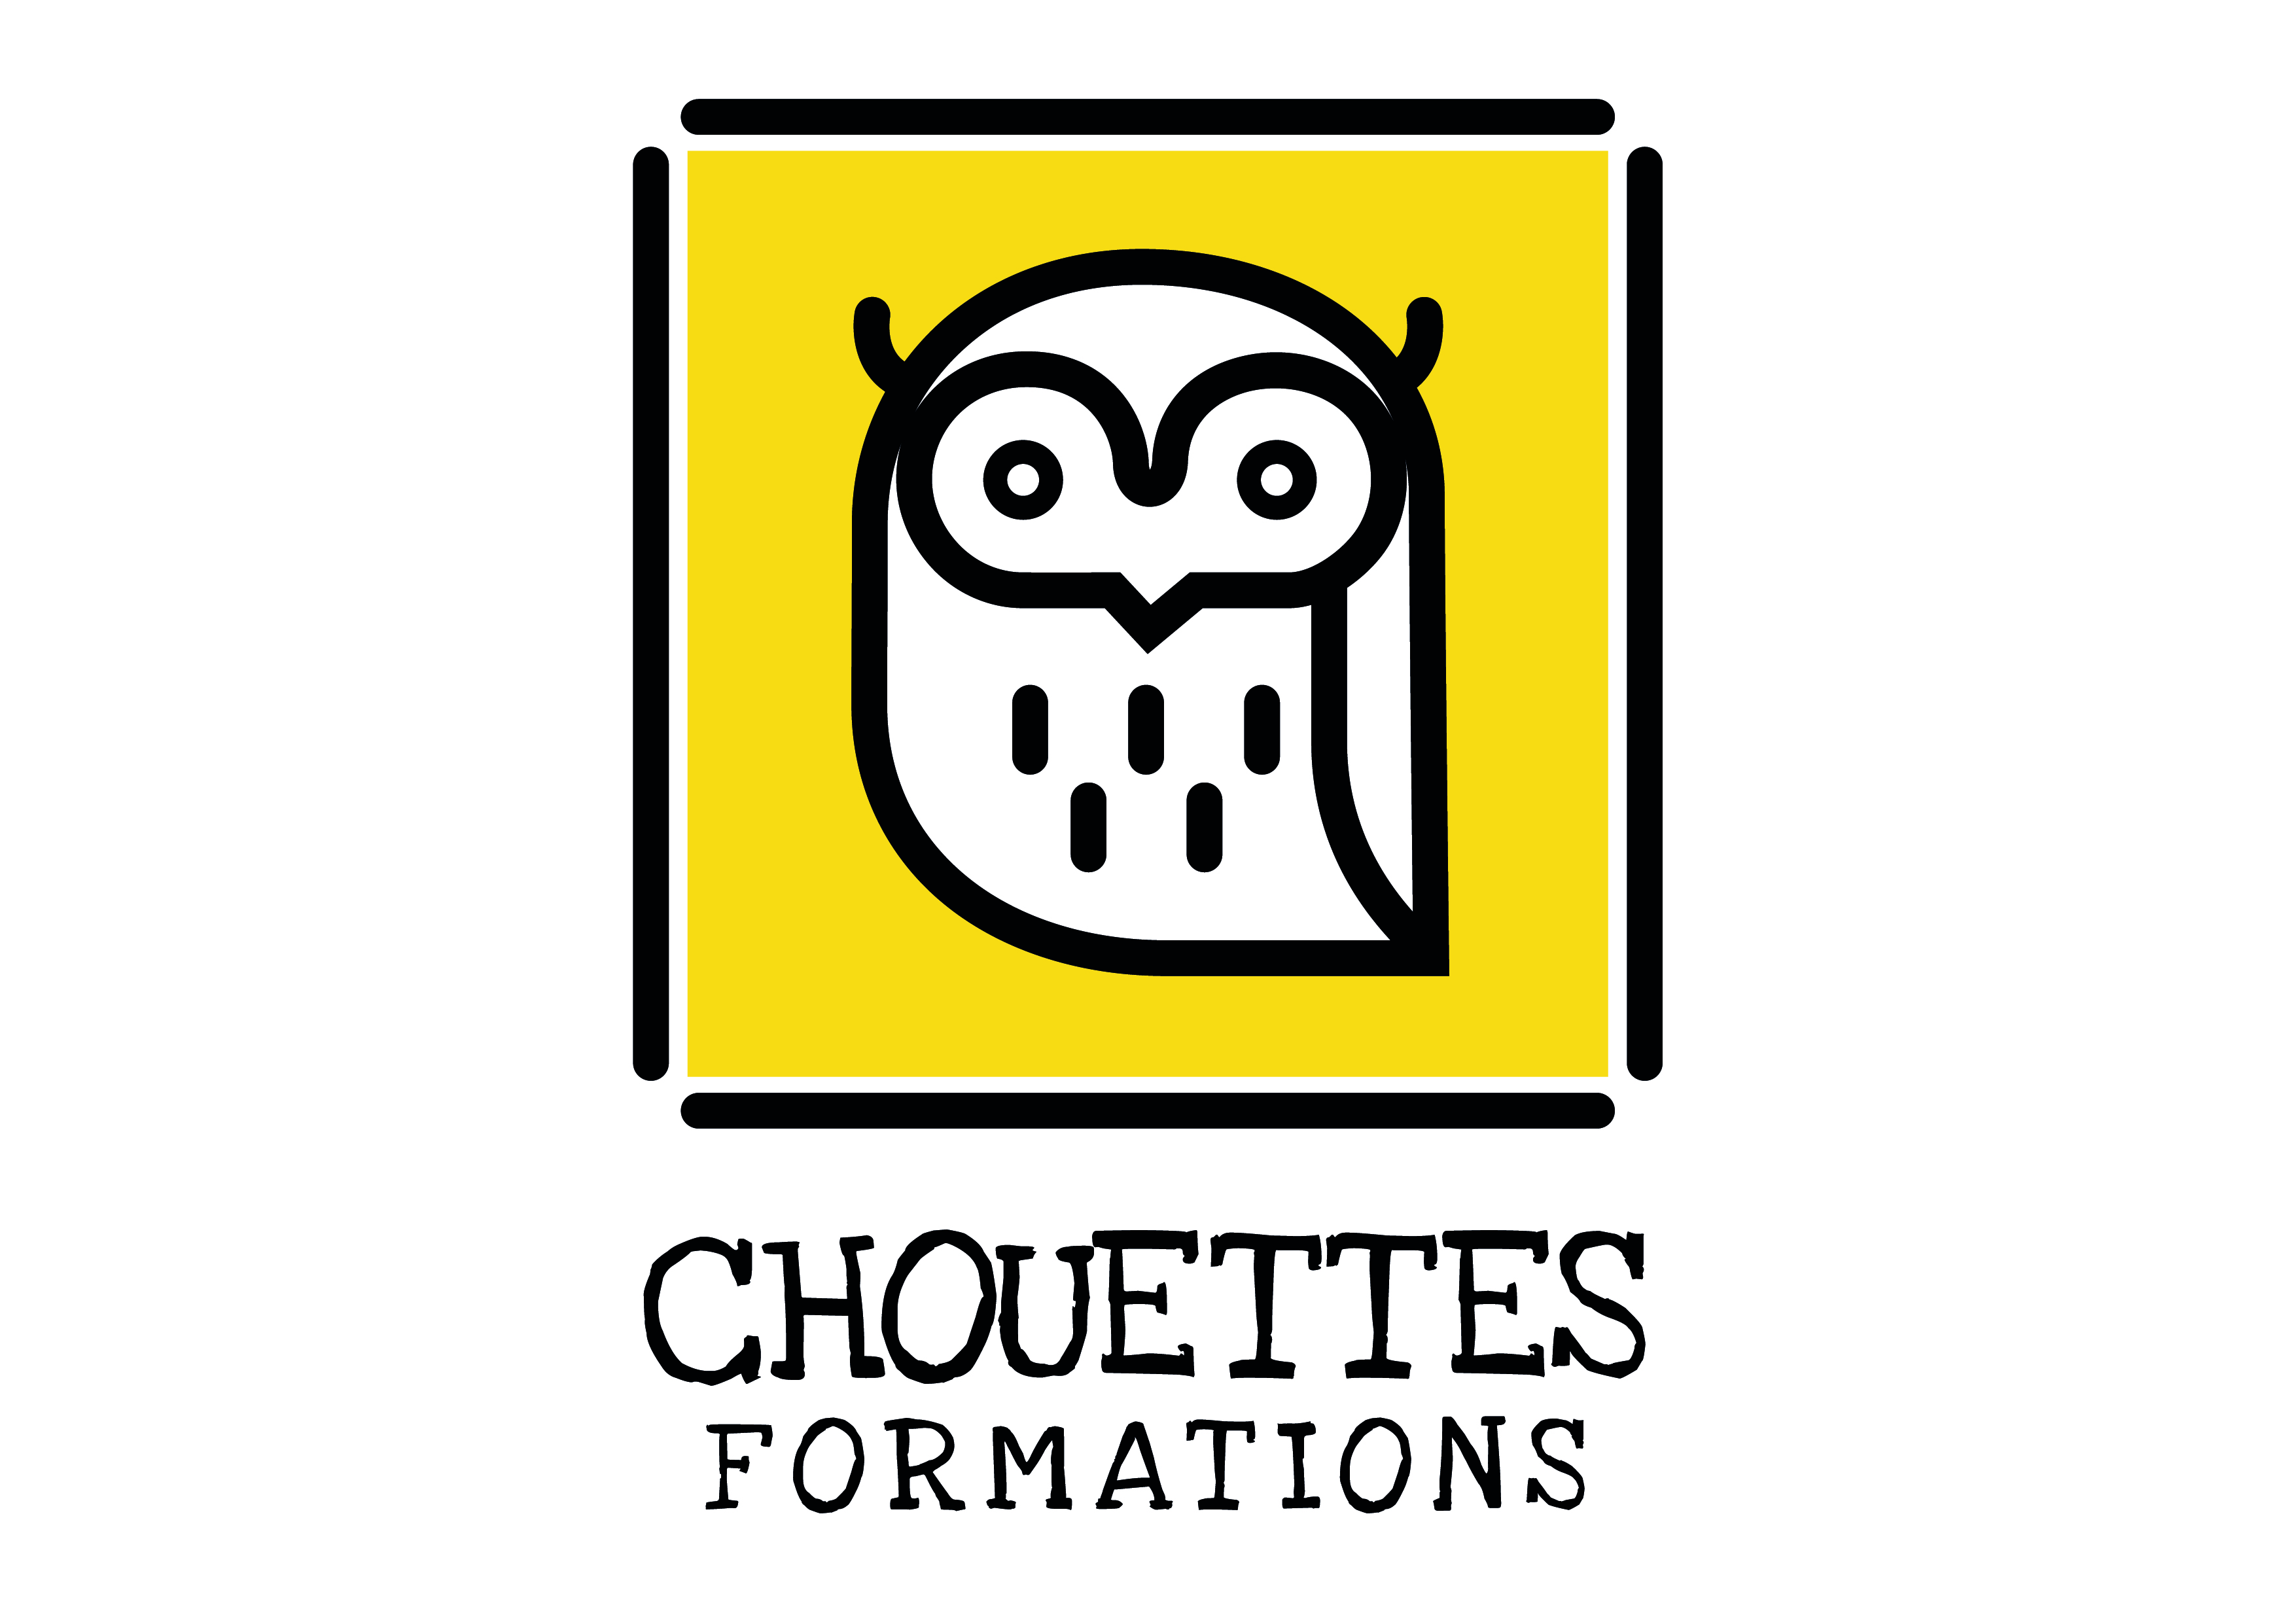 CHOUETTES FORMATIONS